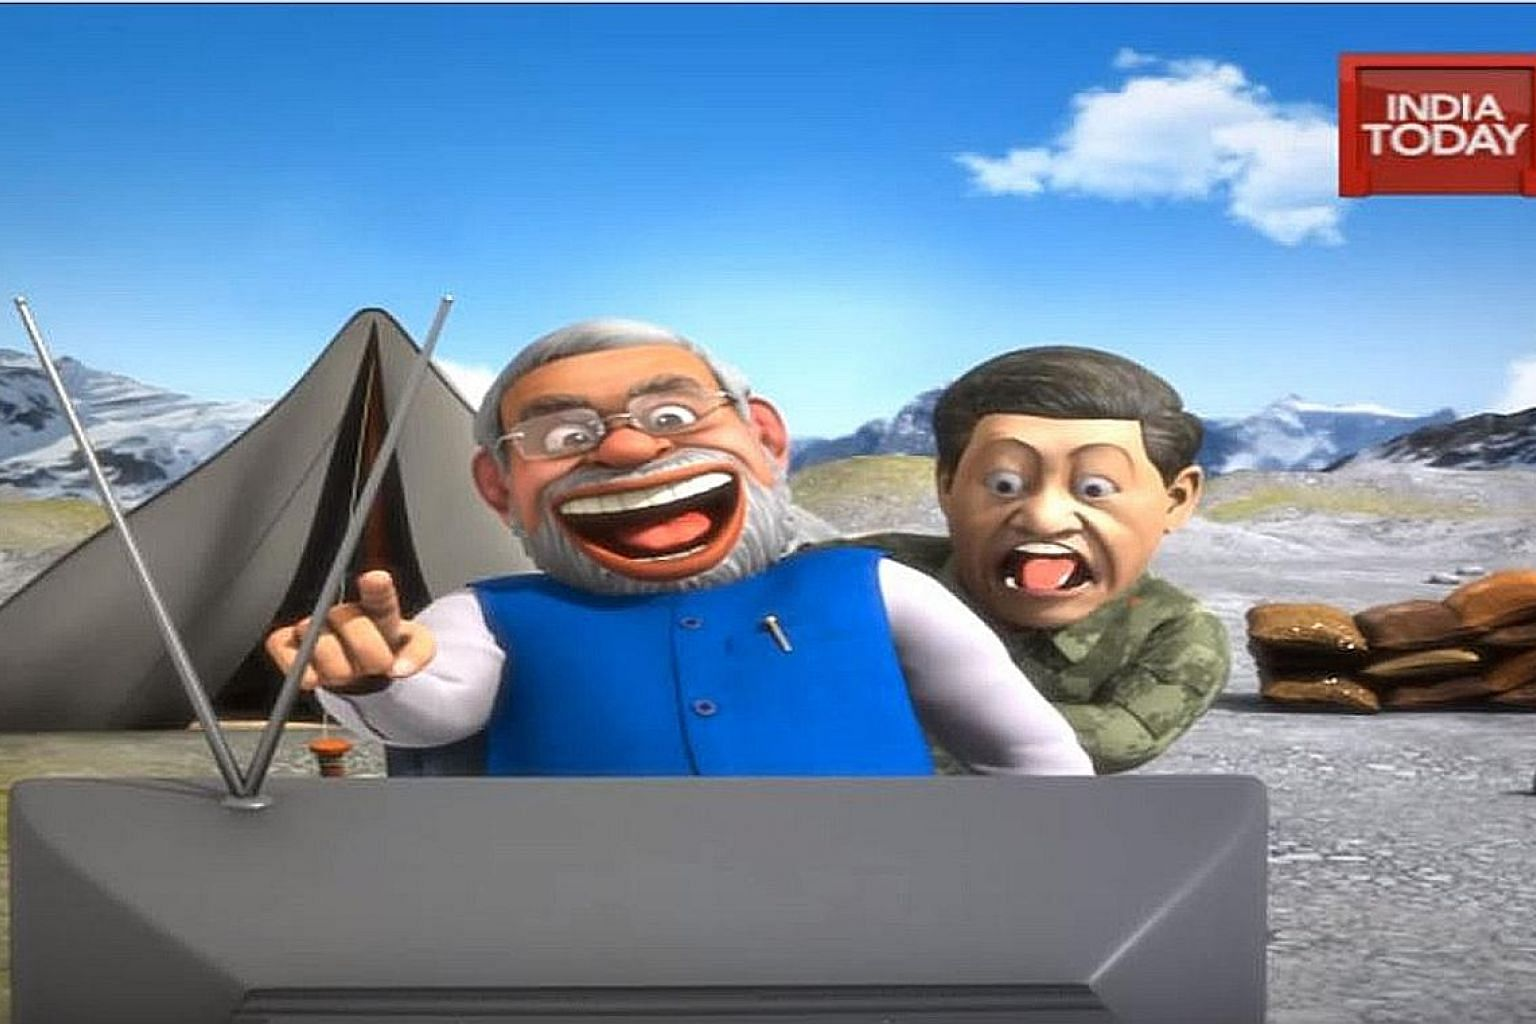 In the animated video produced by privately owned Indian media organisation India Today, Chinese President Xi Jinping is seen getting enraged over a caricature of him on a TV screen dancing while dressed as Winnie the Pooh, even as Indian Prime Minis